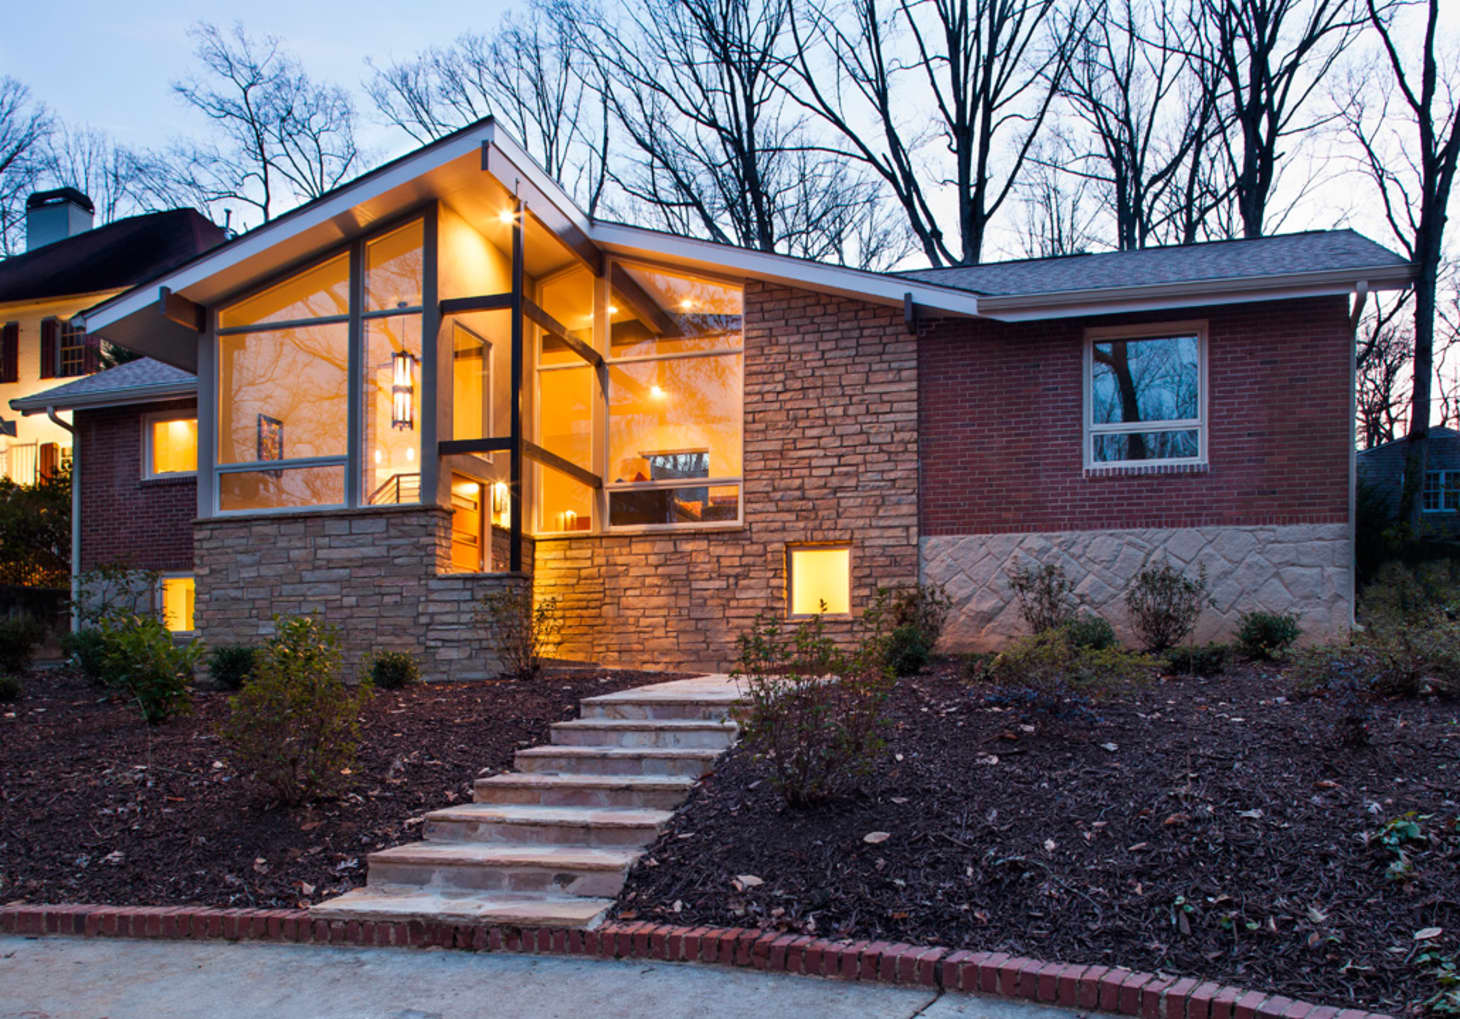 Ranch House Exterior Renovation Ideas to Steal | Apartment ...